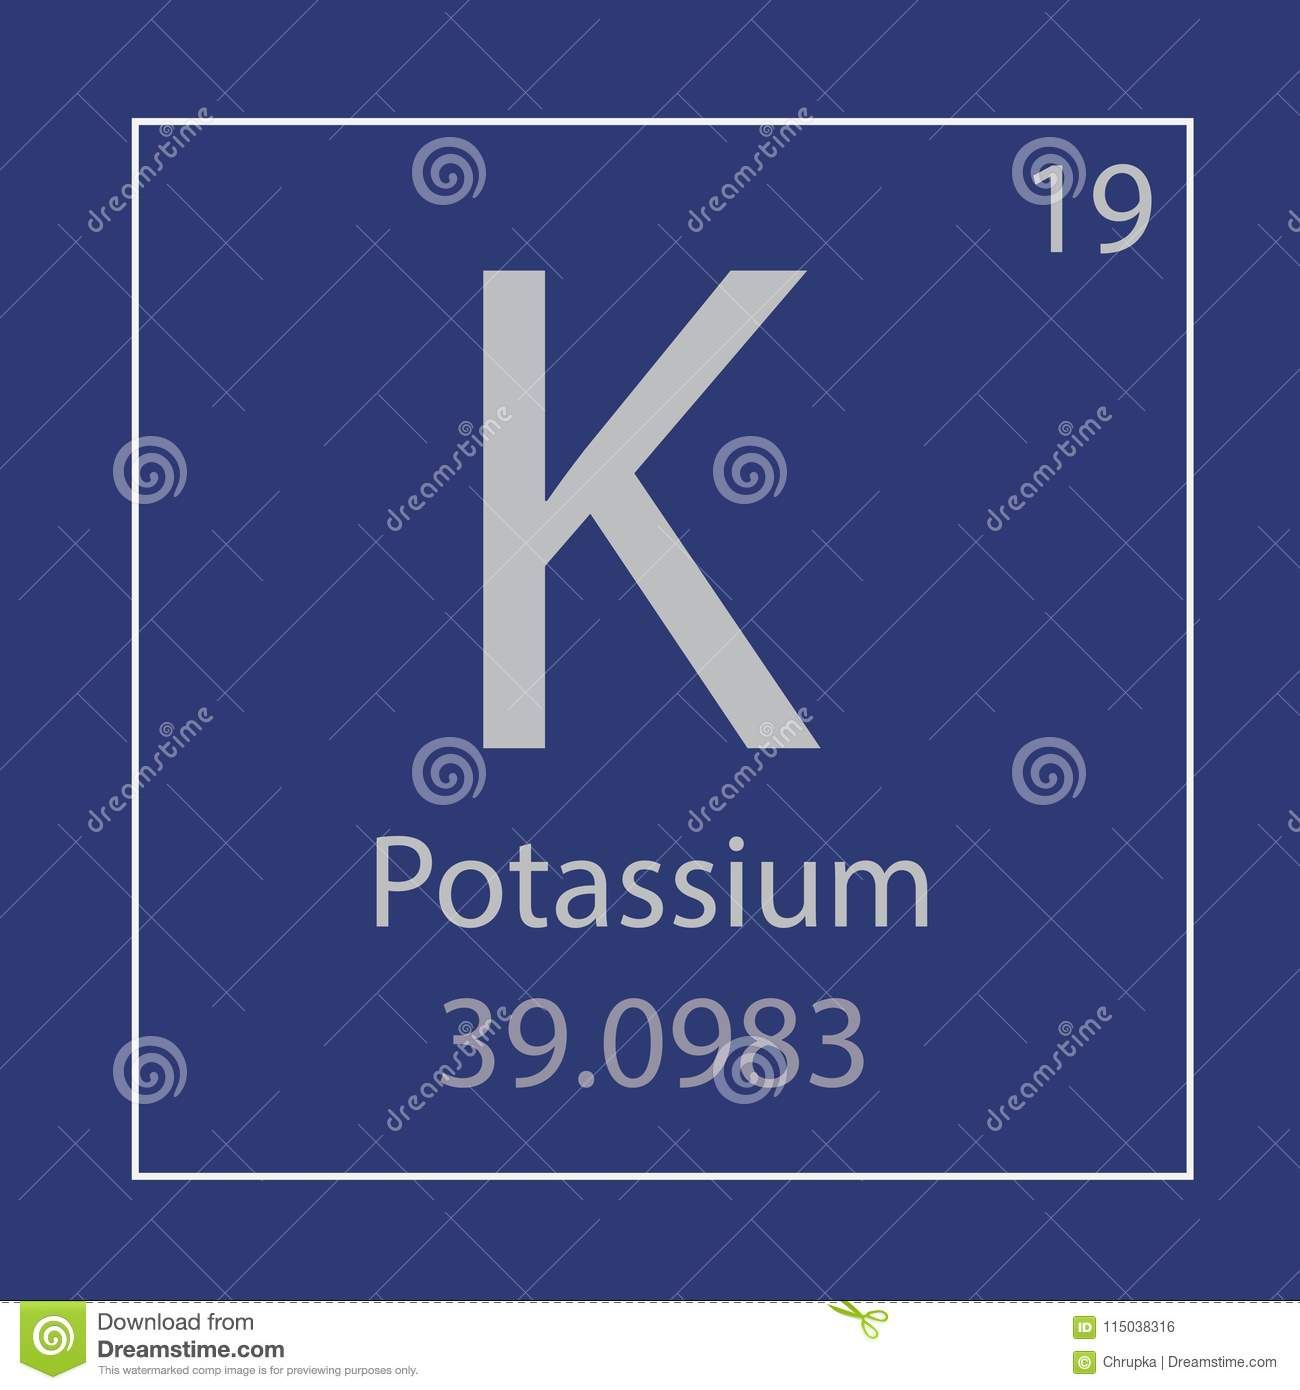 Potassium K Chemical Element Icon Stock Vector Illustration Of